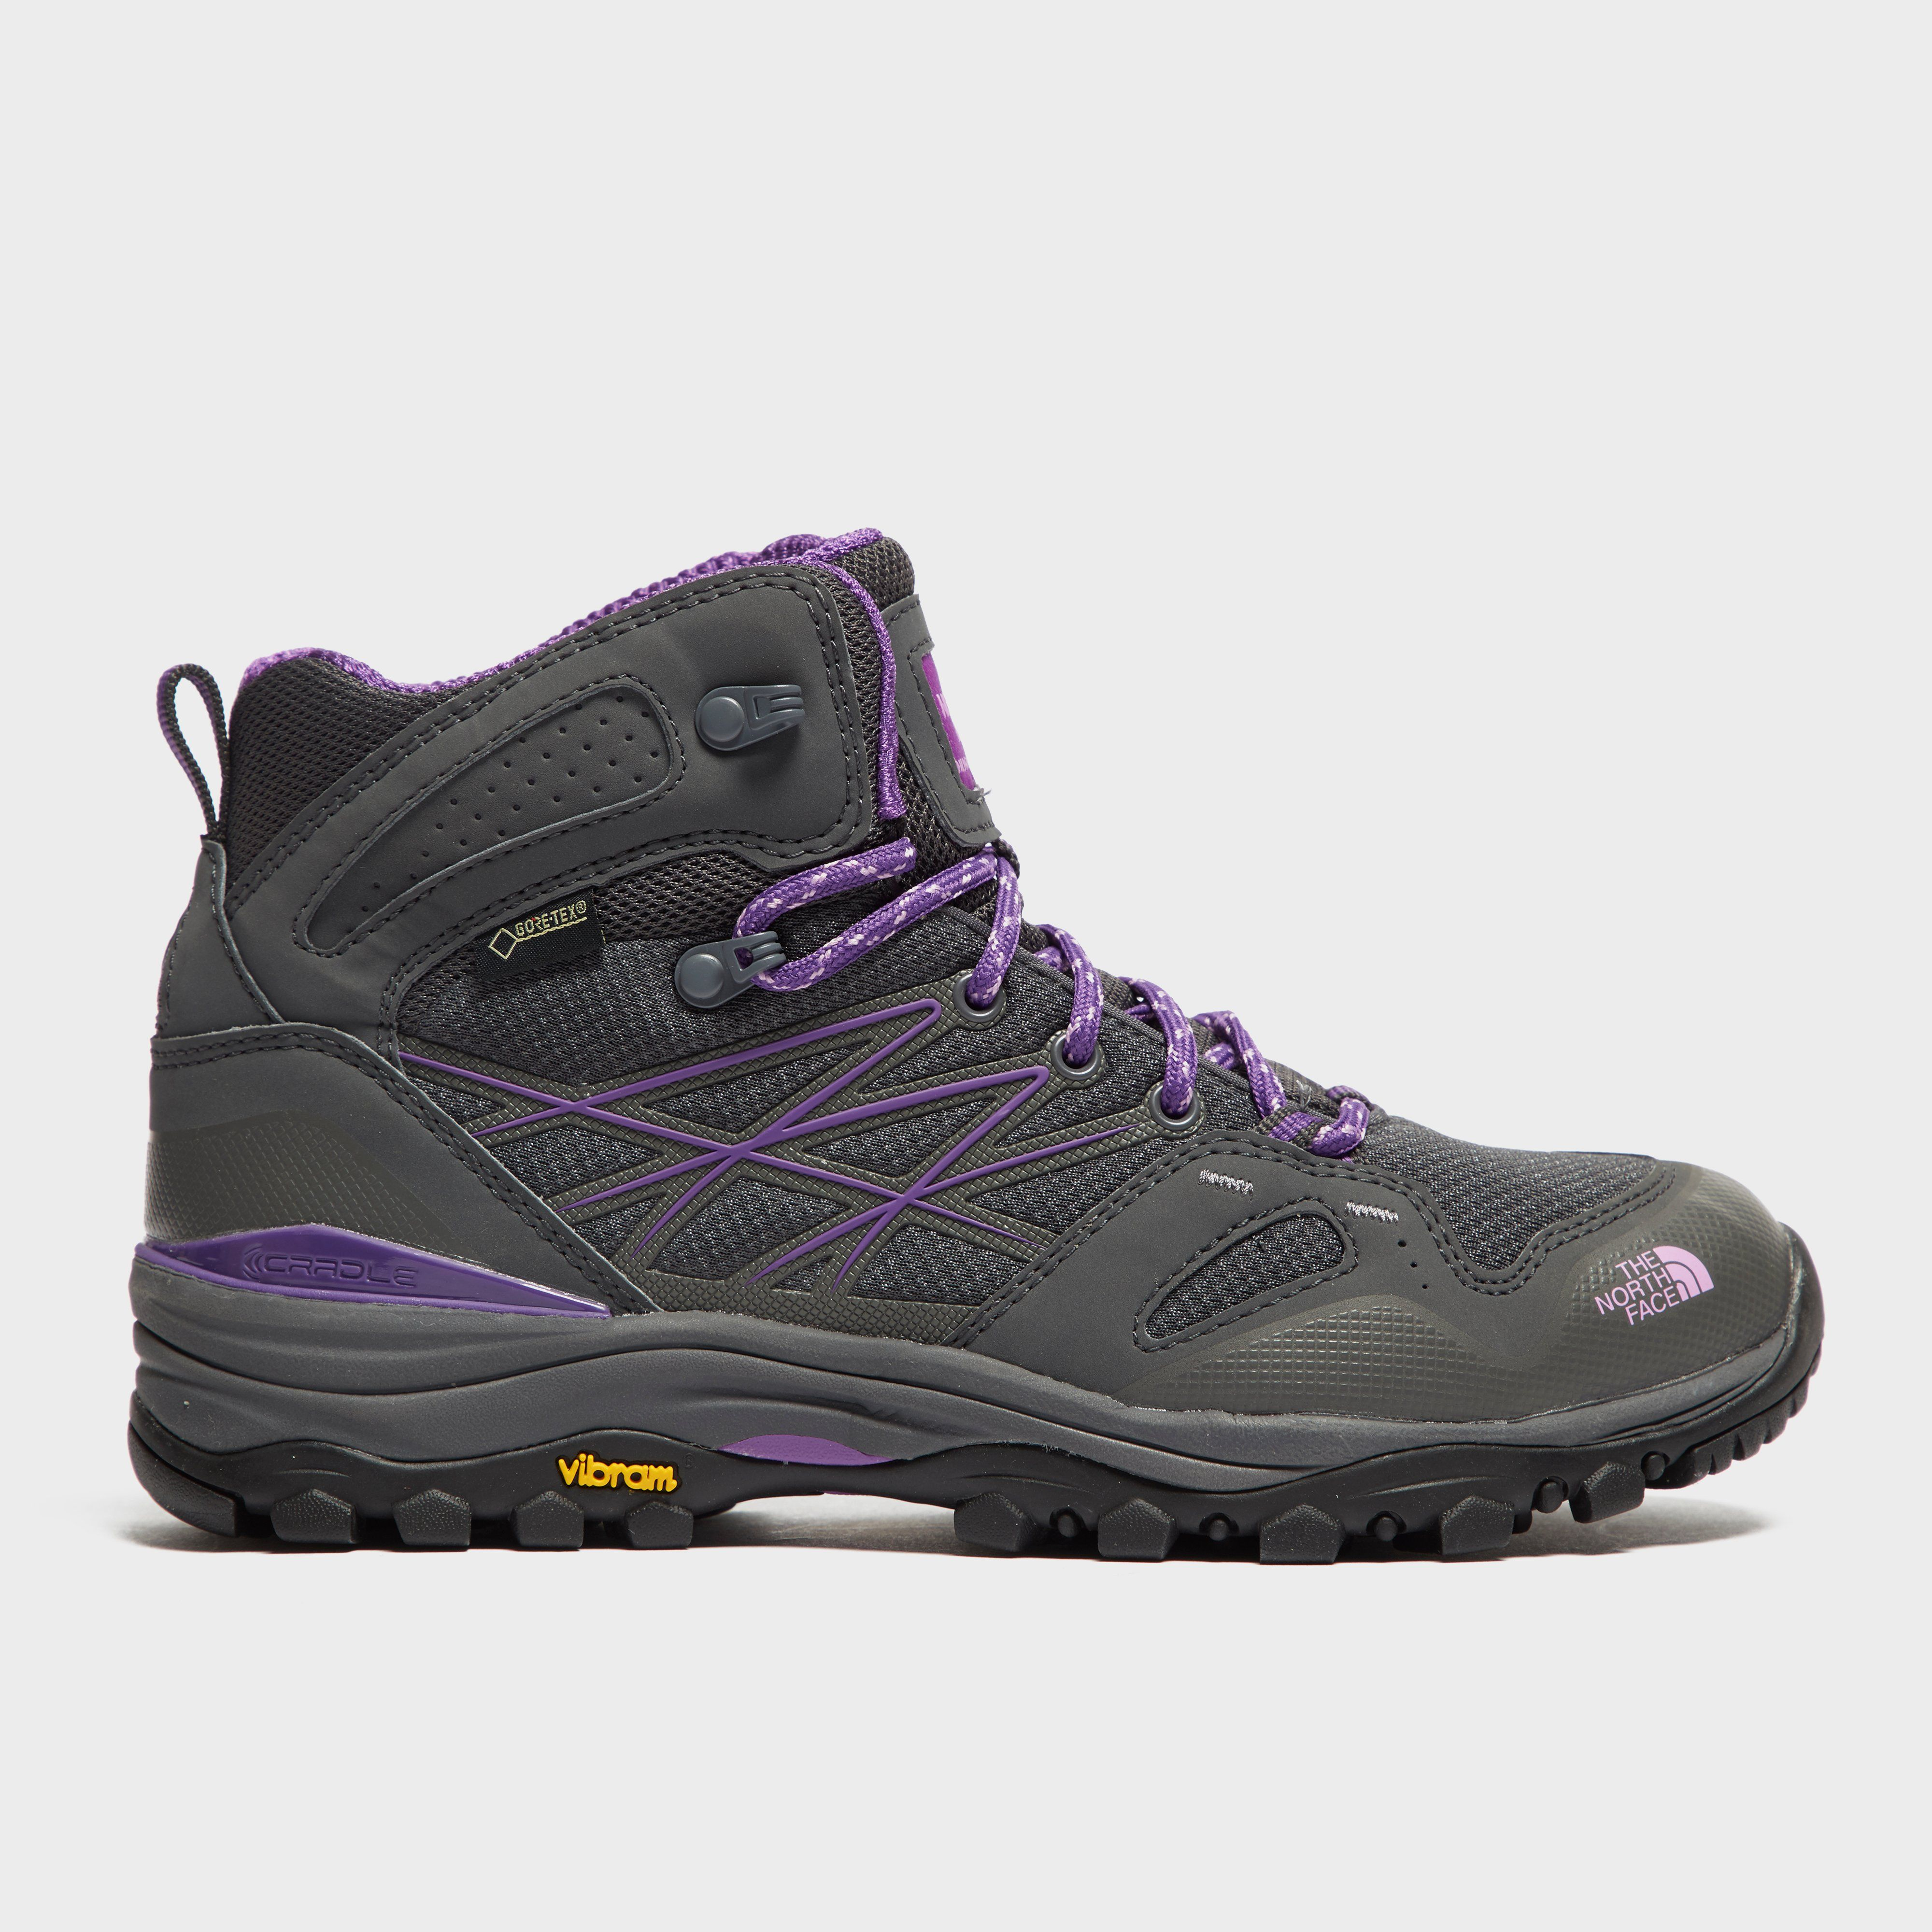 THE NORTH FACE Women's Hedgehog GORE-TEX® Shoes